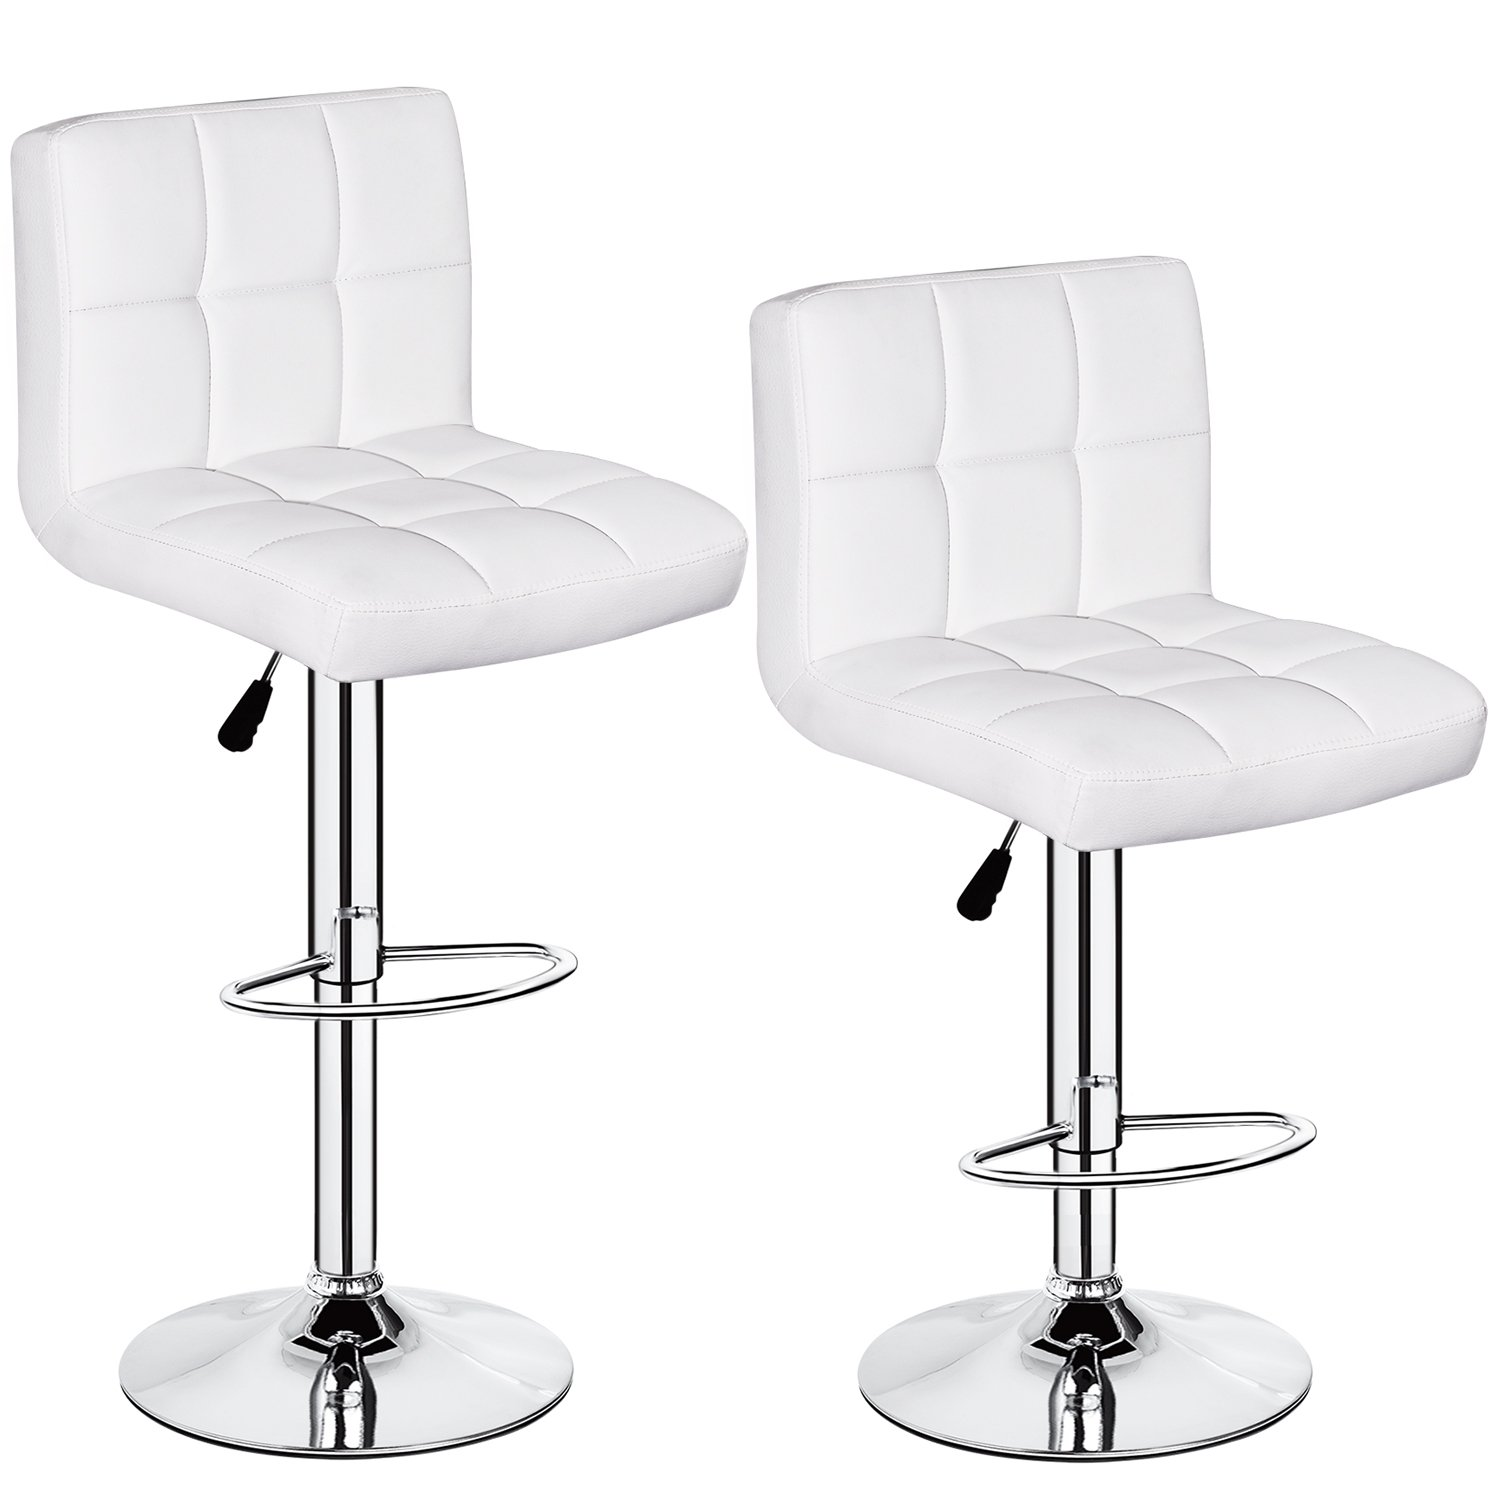 Set of 2 PU Leather Hydraulic Swivel Gas lift Bar Stools 350 lbs Capacity Height Adjustable White